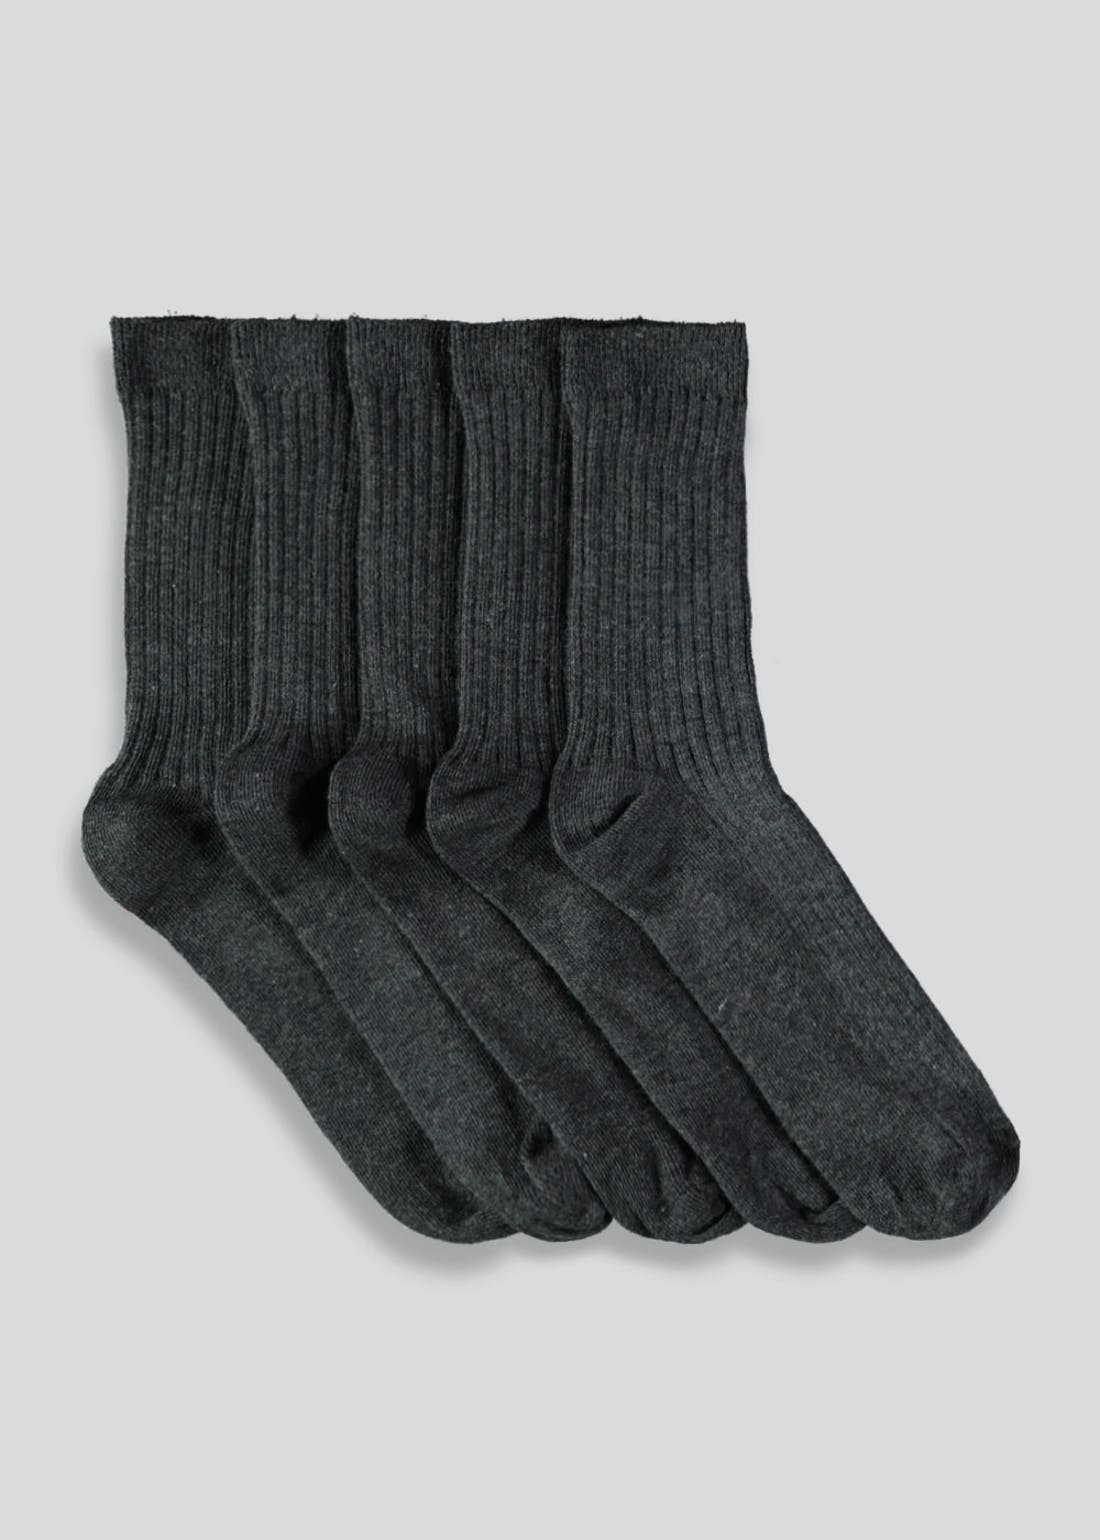 Boys 5 Pack Ribbed Socks (Younger Kids 9-Older Kids 6.5)